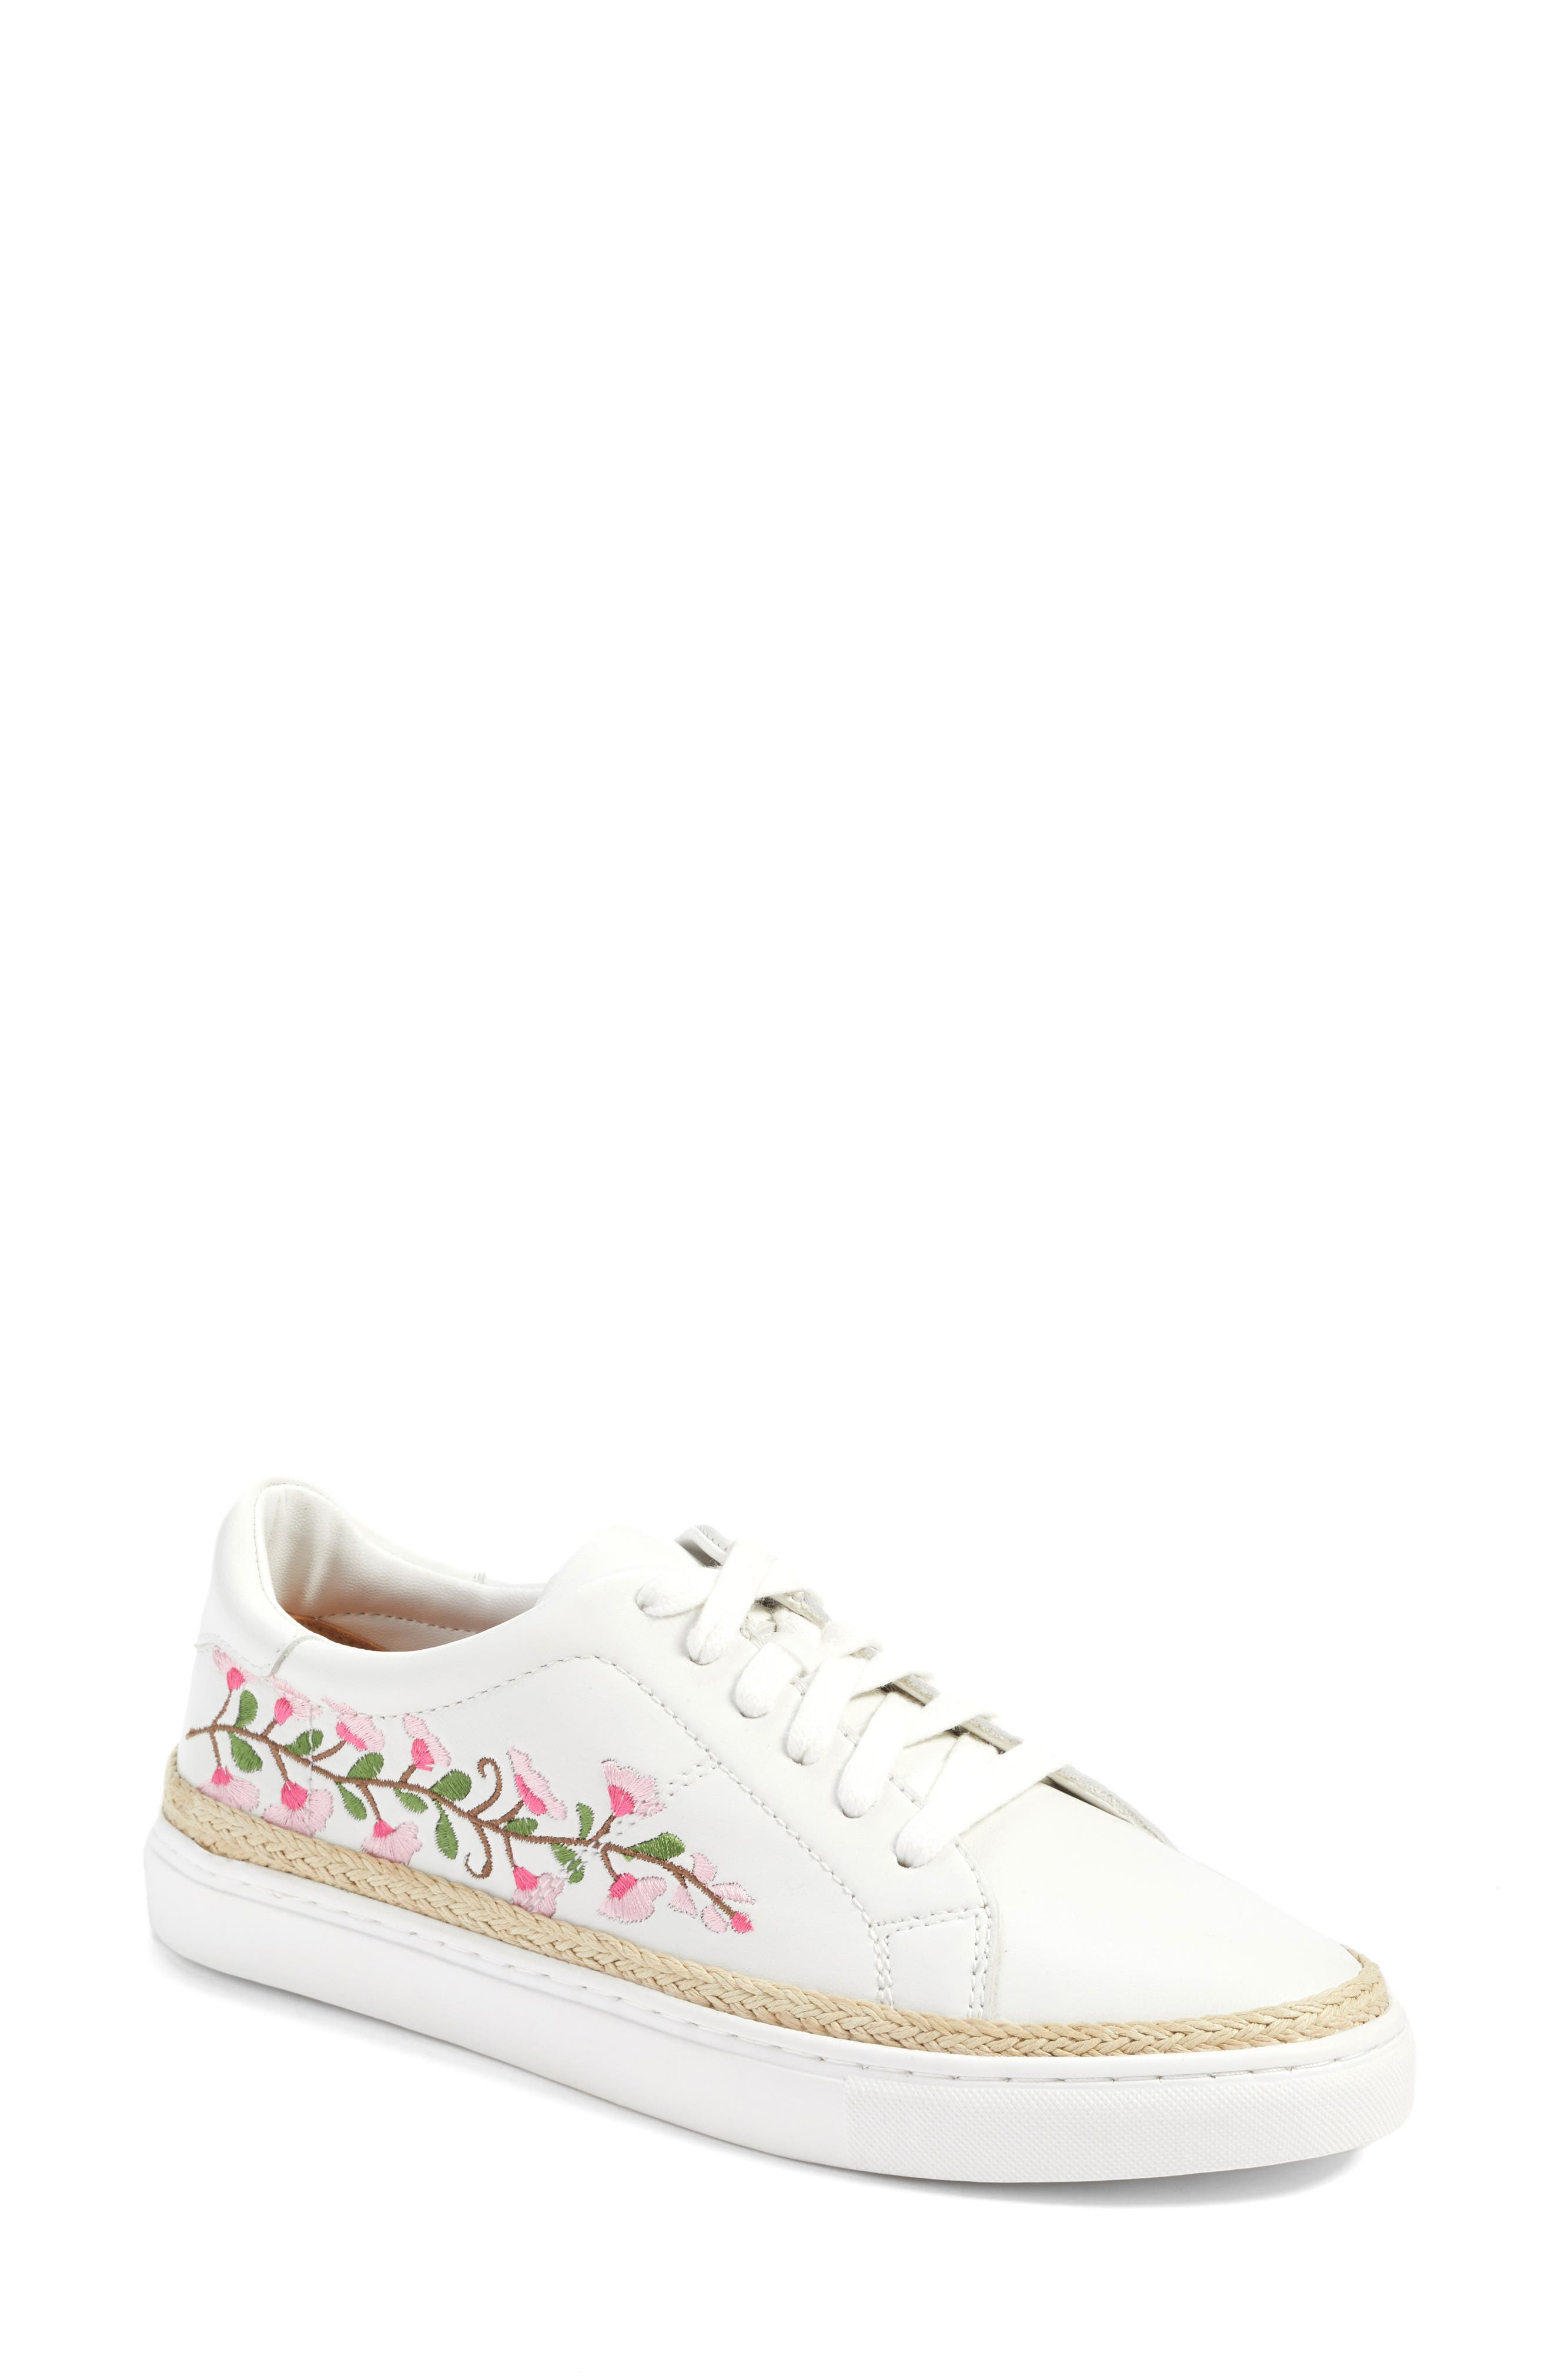 Perry Lea Embroidered Sneaker,                             Main thumbnail 1, color,                             White Leather